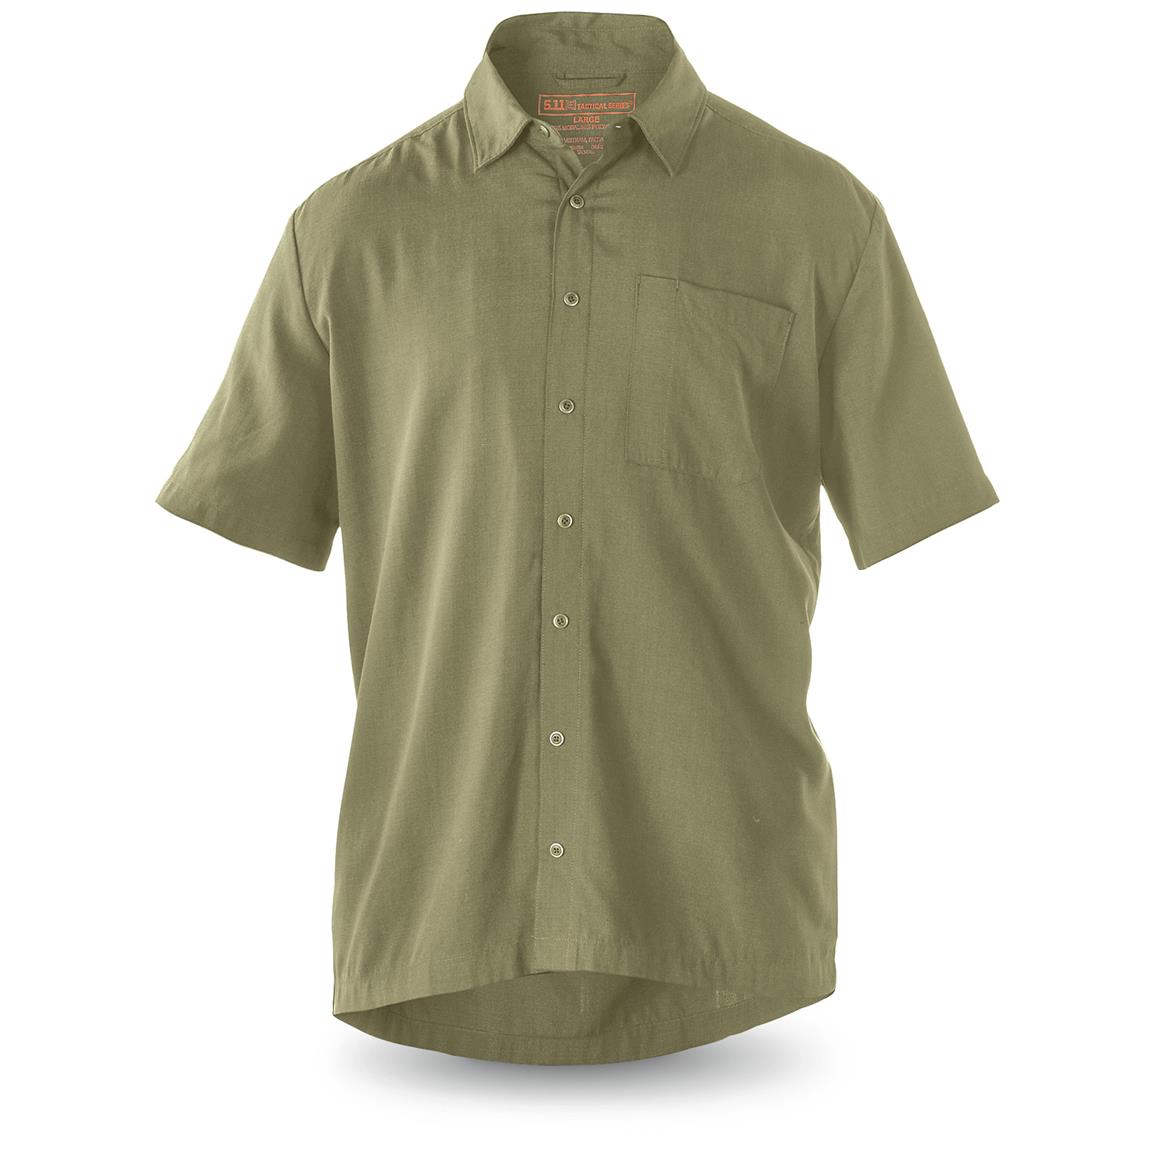 5.11 Select Covert CCW Shirt Fatigue